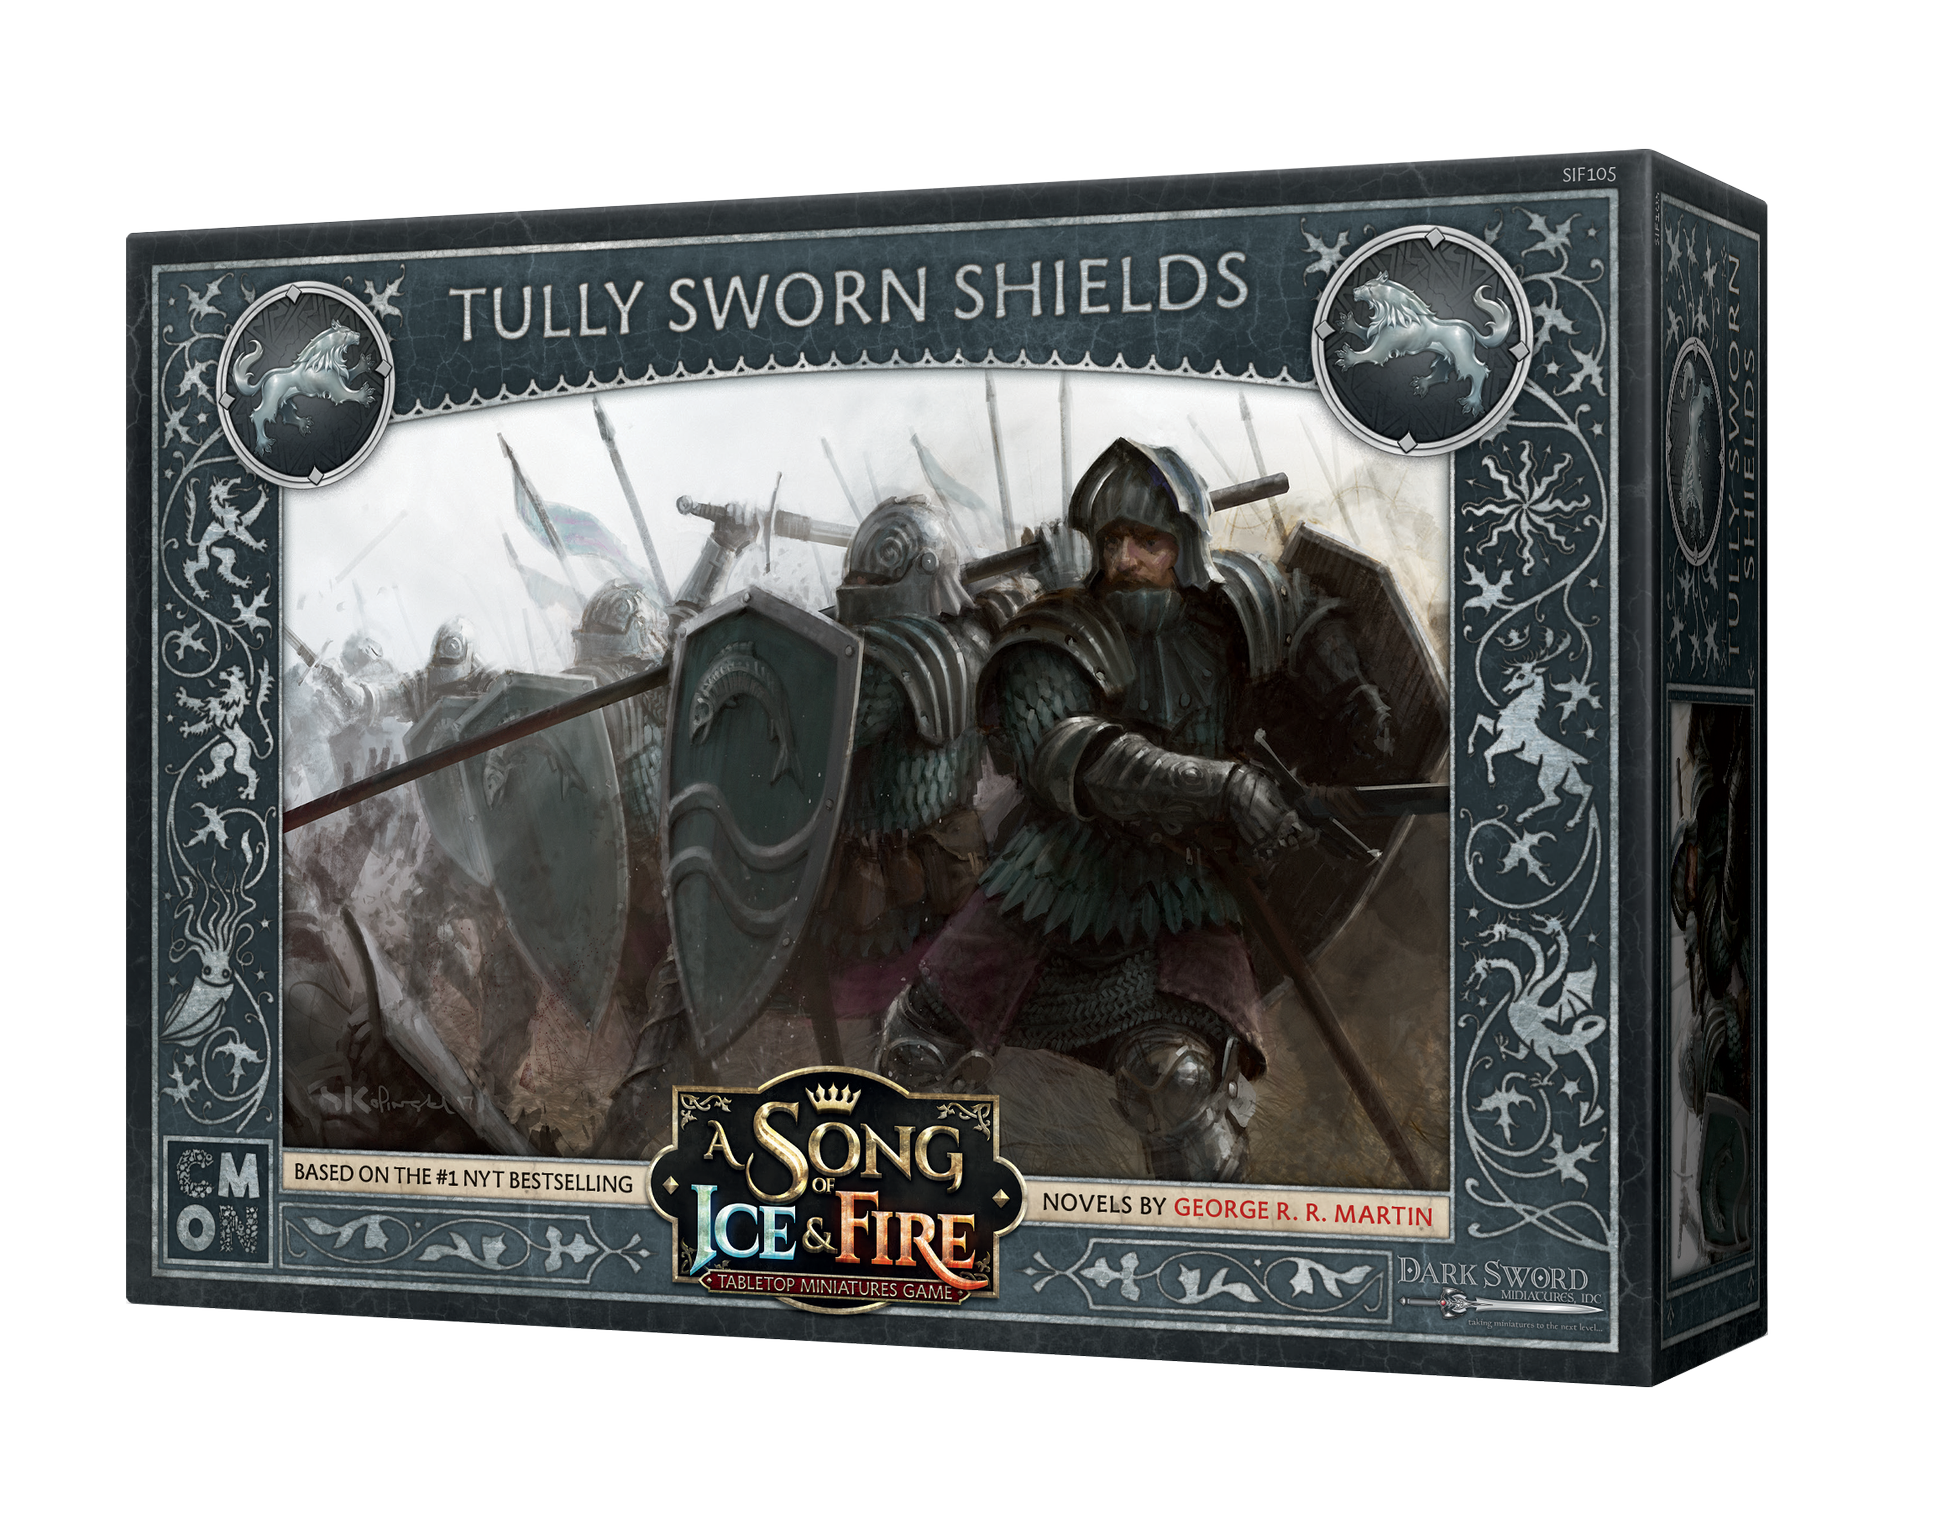 Song of Ice & Fire Miniatures Game: Tully Sworn Shields